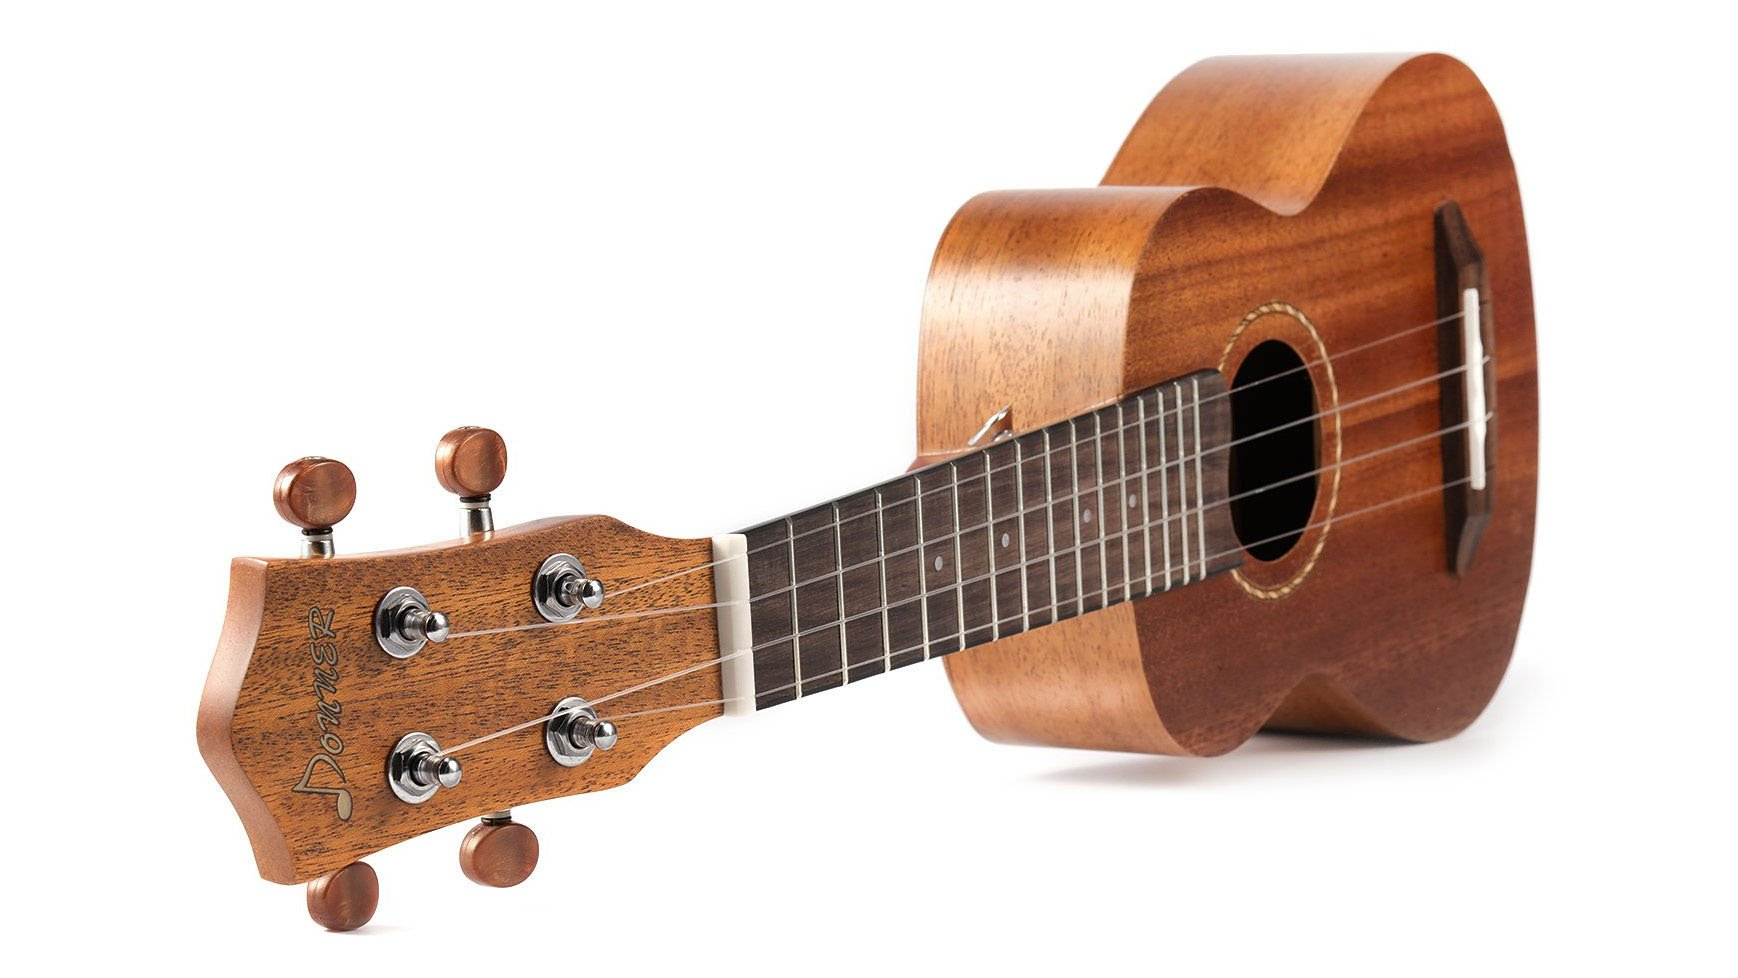 best ukulele 2019 high quality easy to play ukuleles from just 21 expert reviews. Black Bedroom Furniture Sets. Home Design Ideas